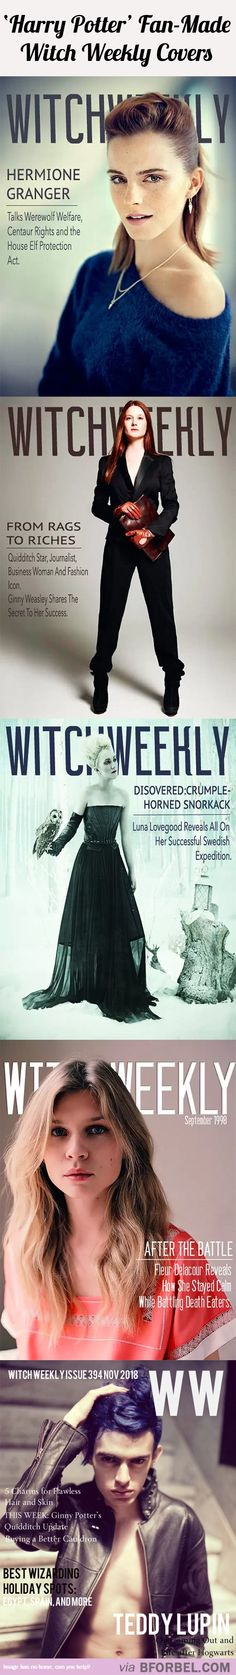 5 Cover Faces For Witch Weekly Magazine…